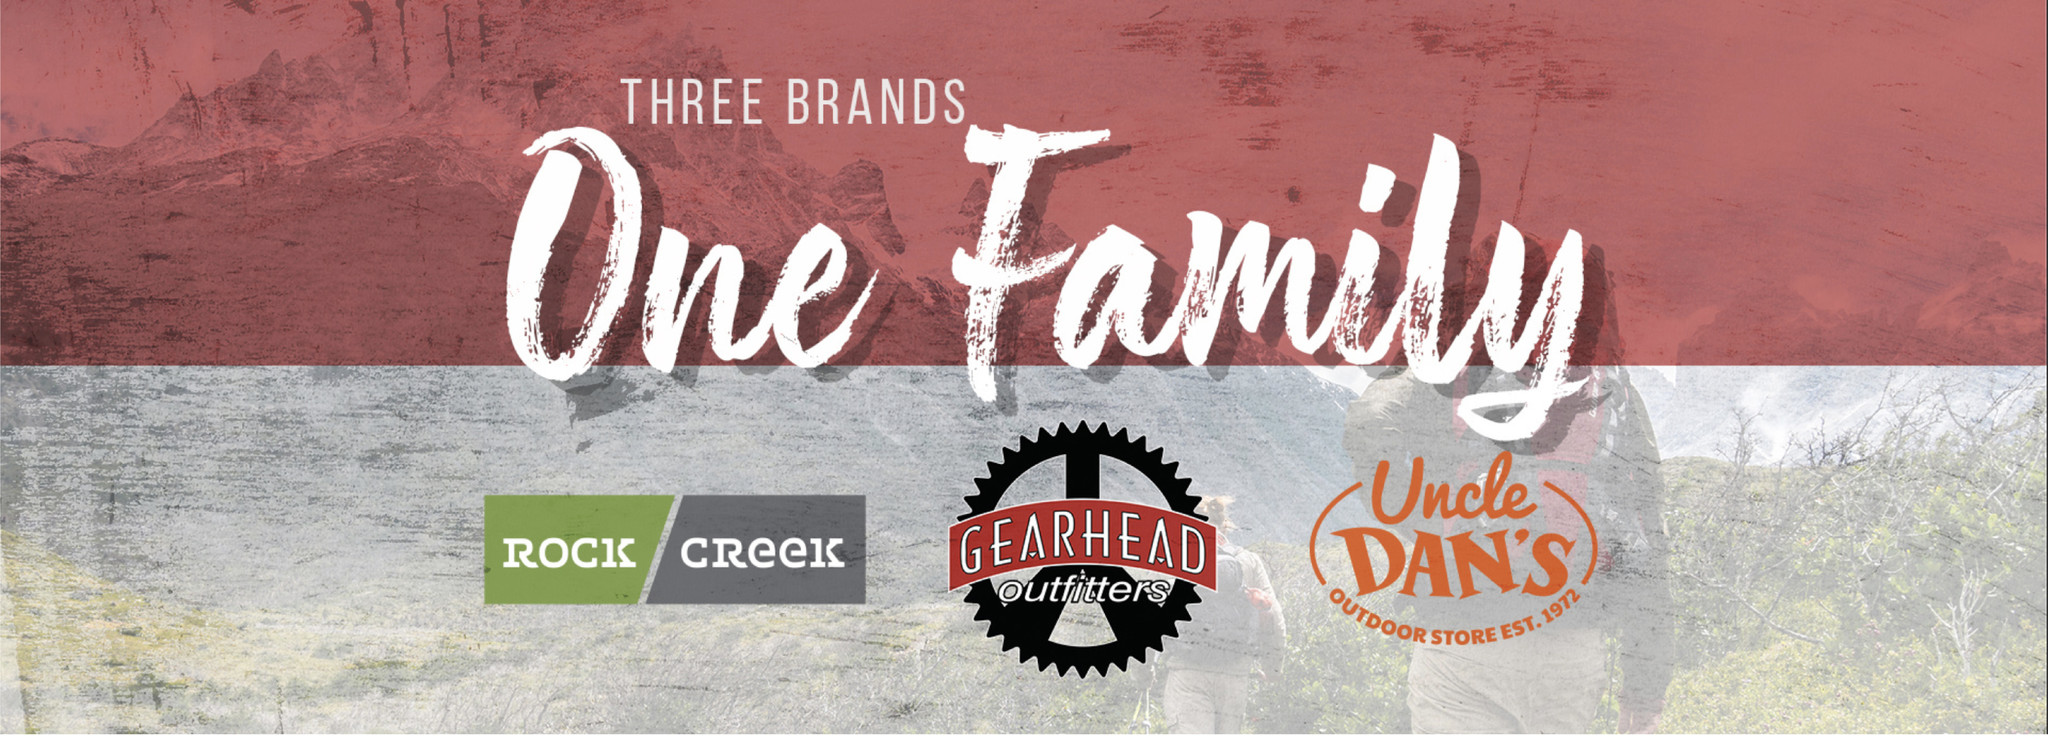 Gearhead Outfitters - Gearhead Outfitters